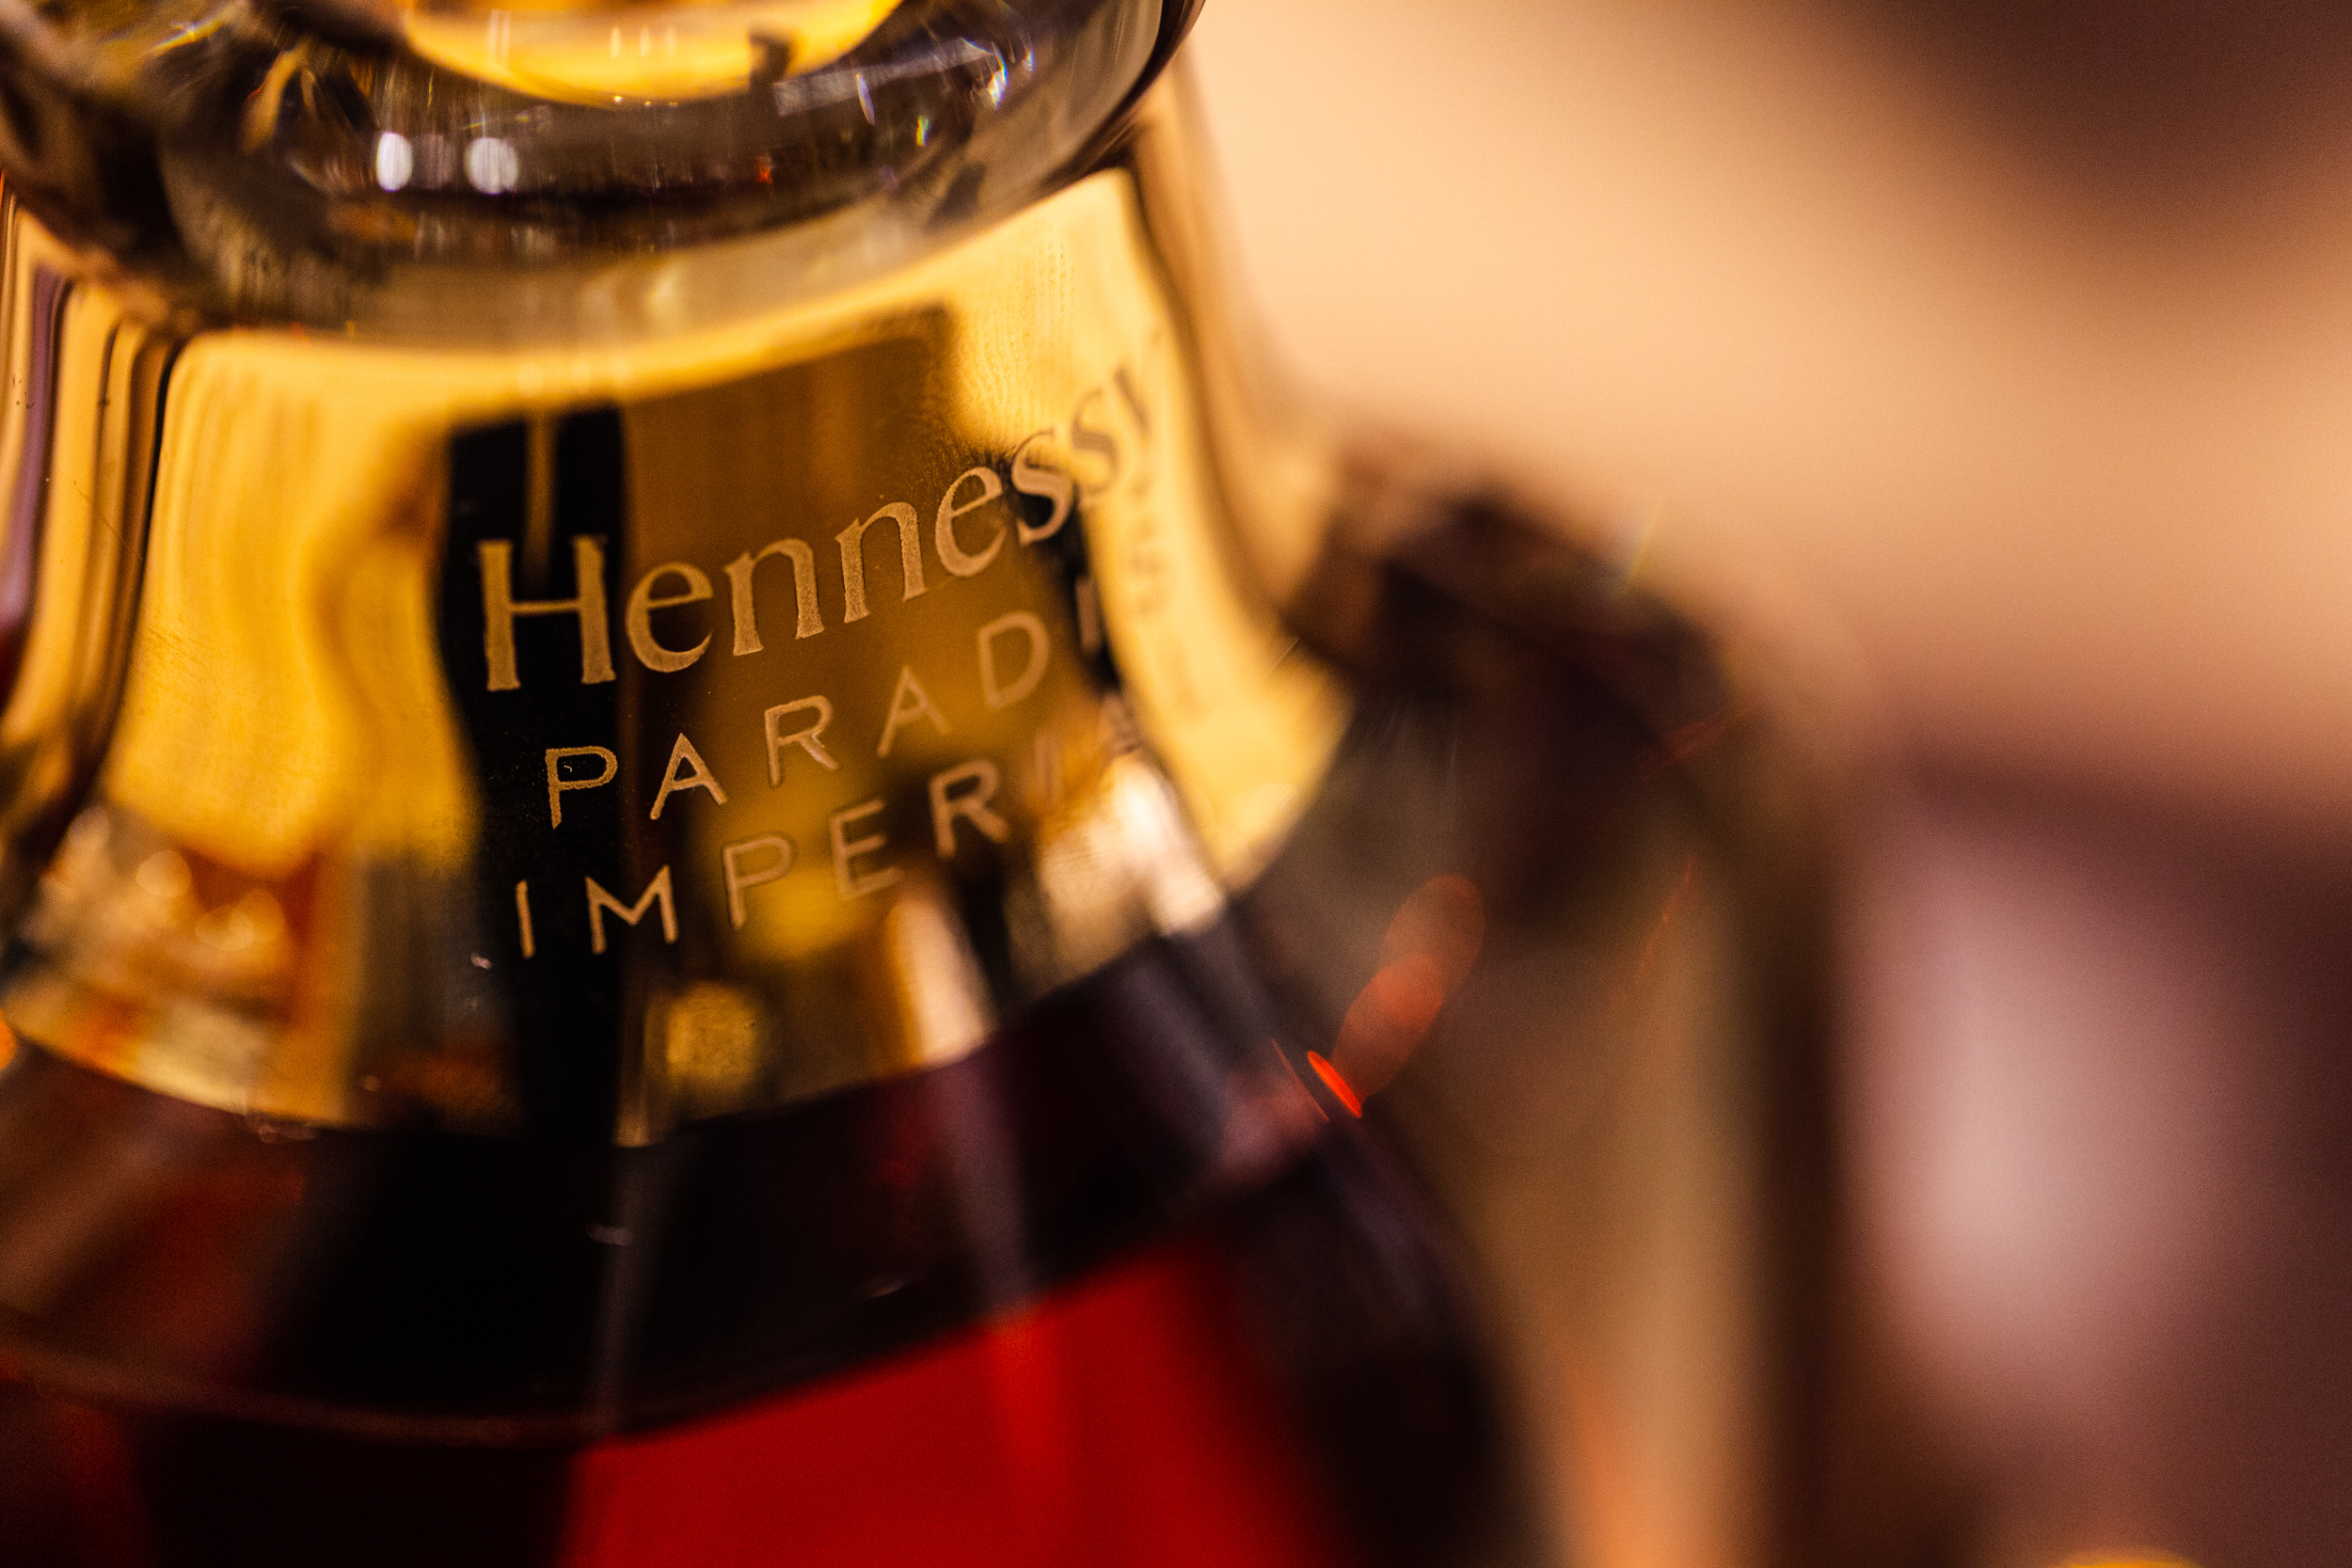 Hennessy x Louis Vuitton - Louis Vuitton / Hennessy Paradis Imperial Case Launch